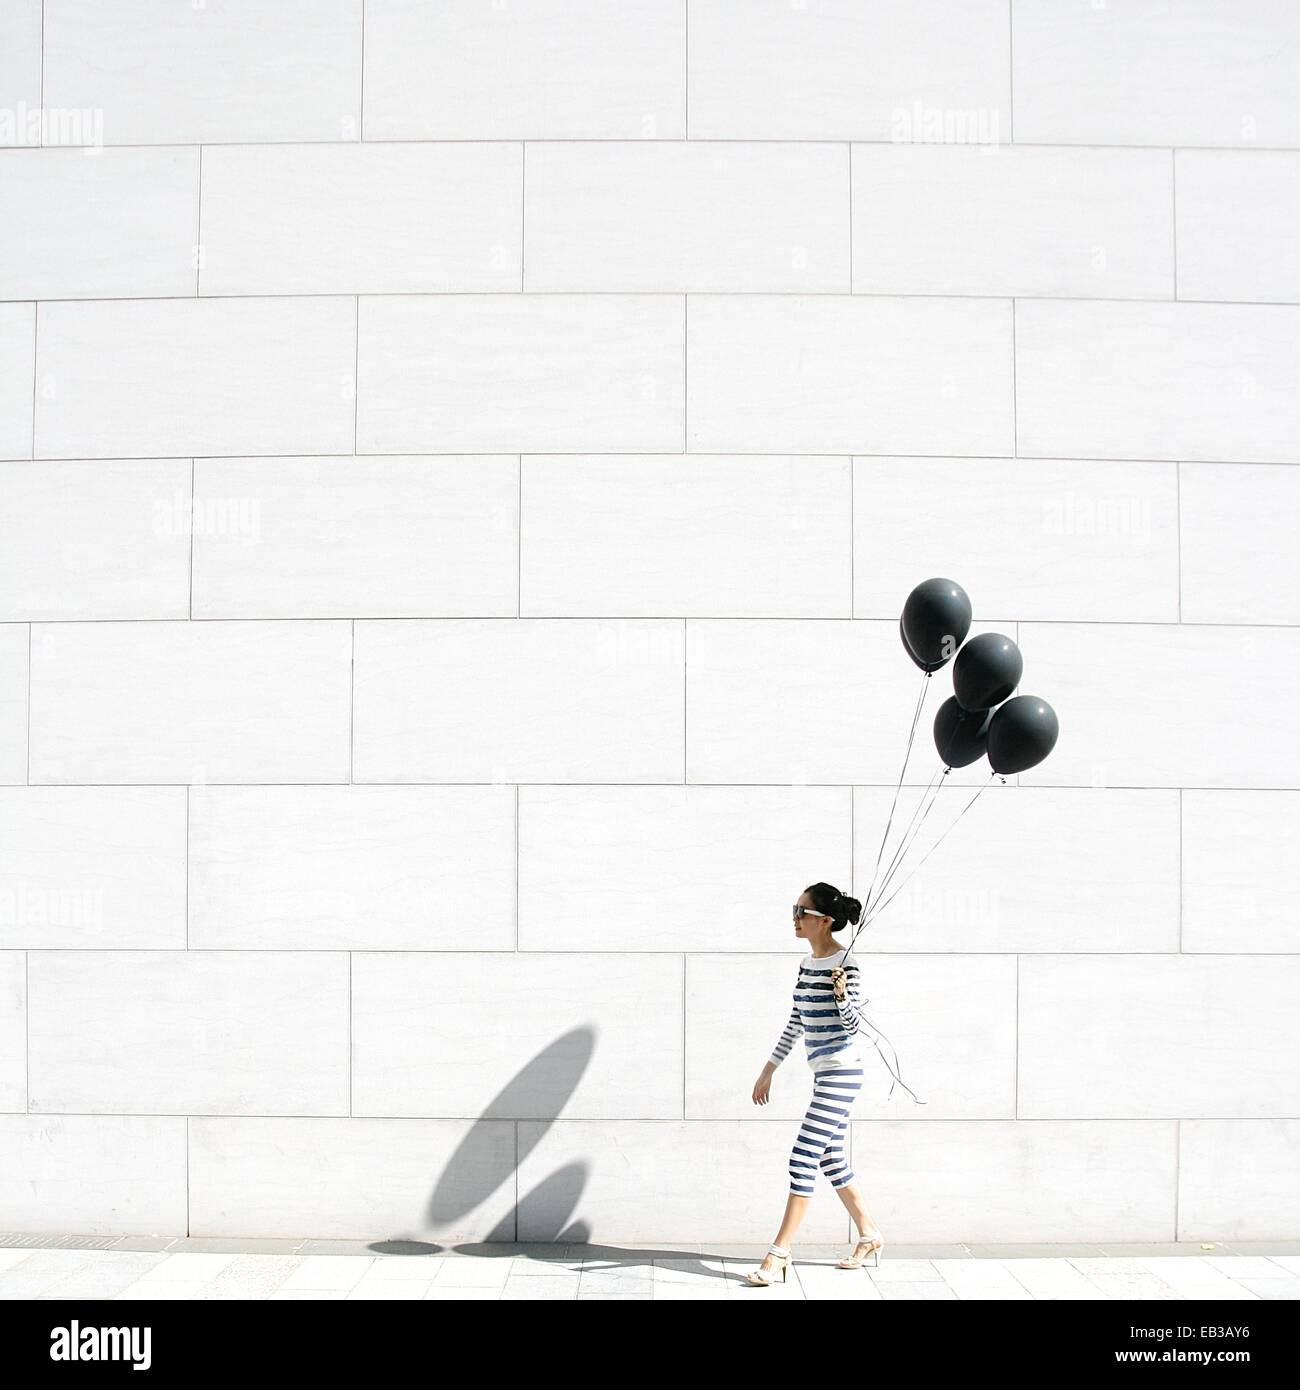 Woman walking with black balloons - Stock Image